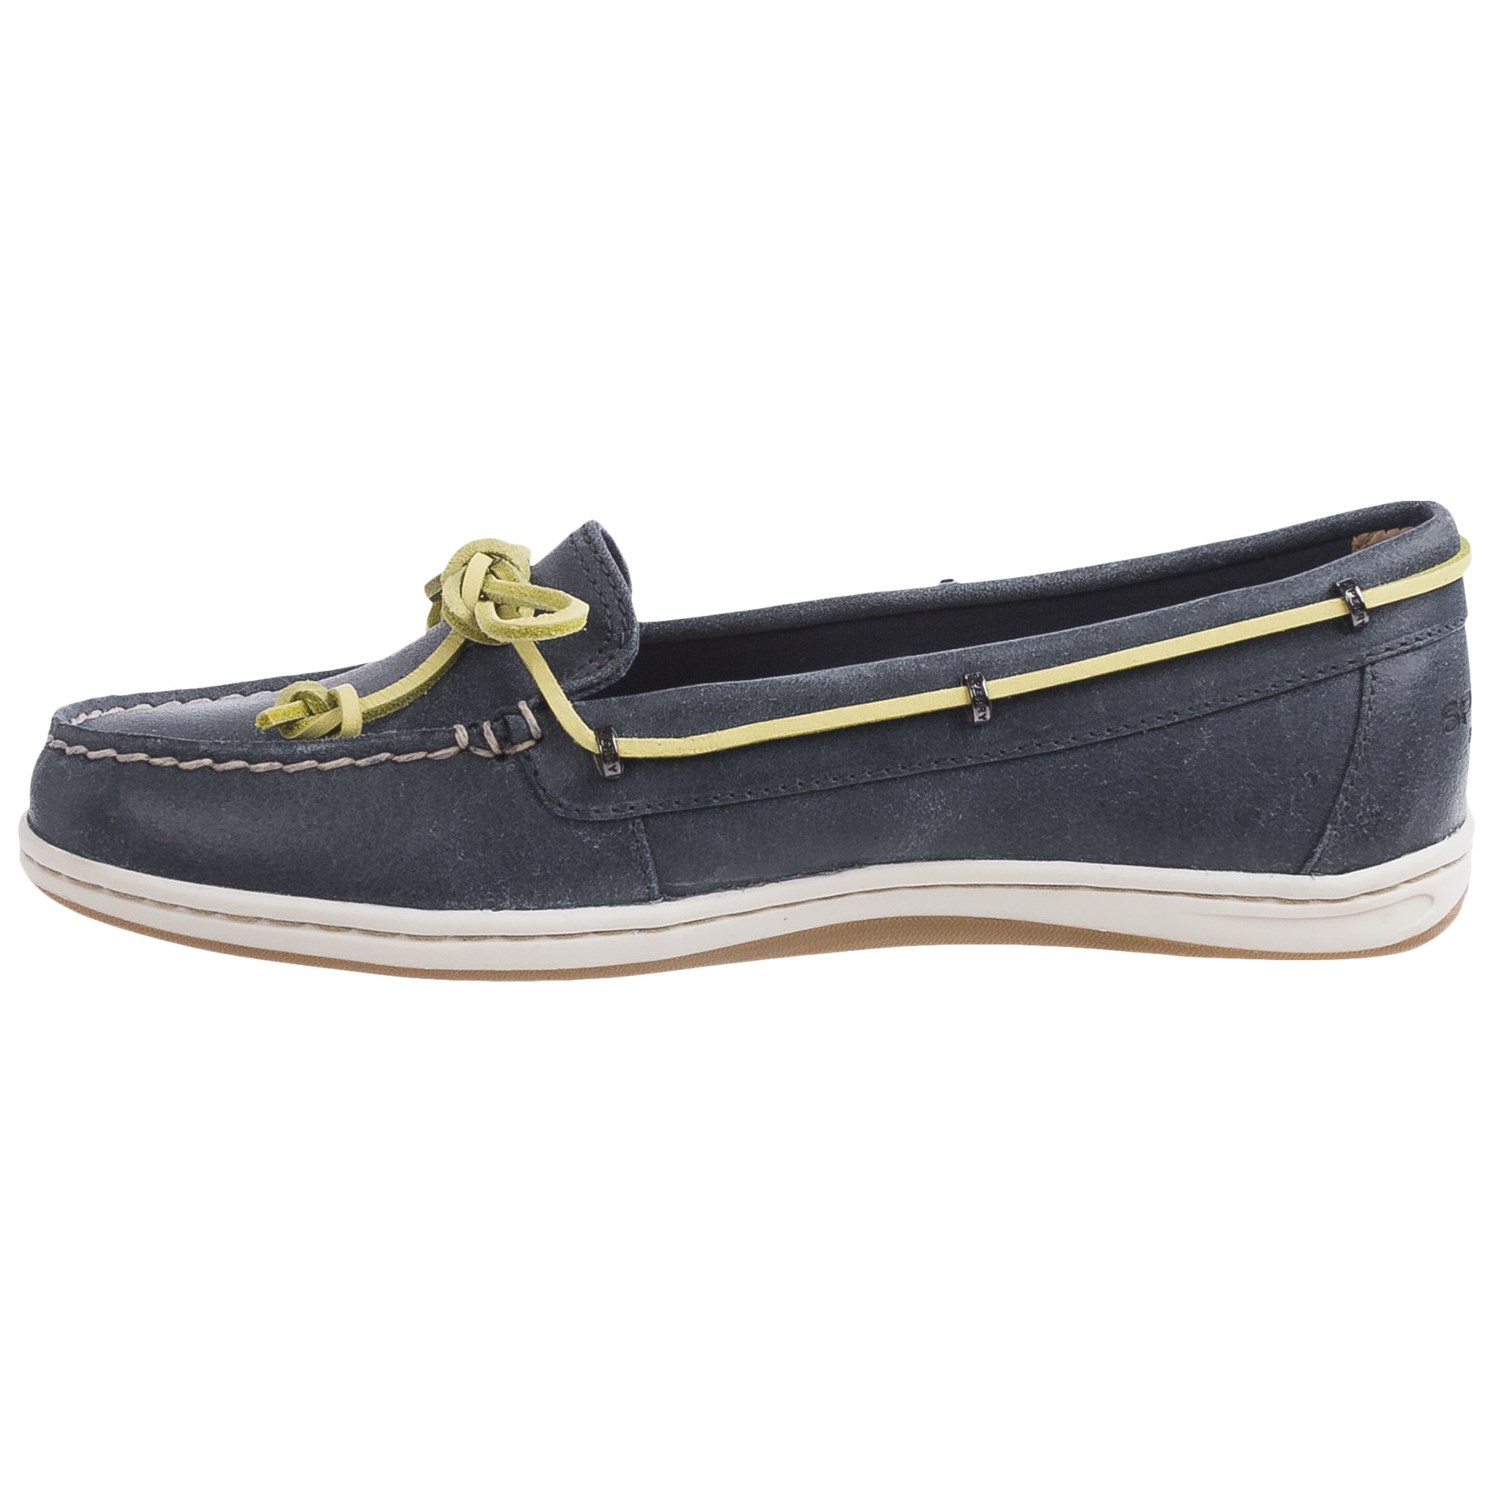 Buy Sperry Boat Shoes Australia